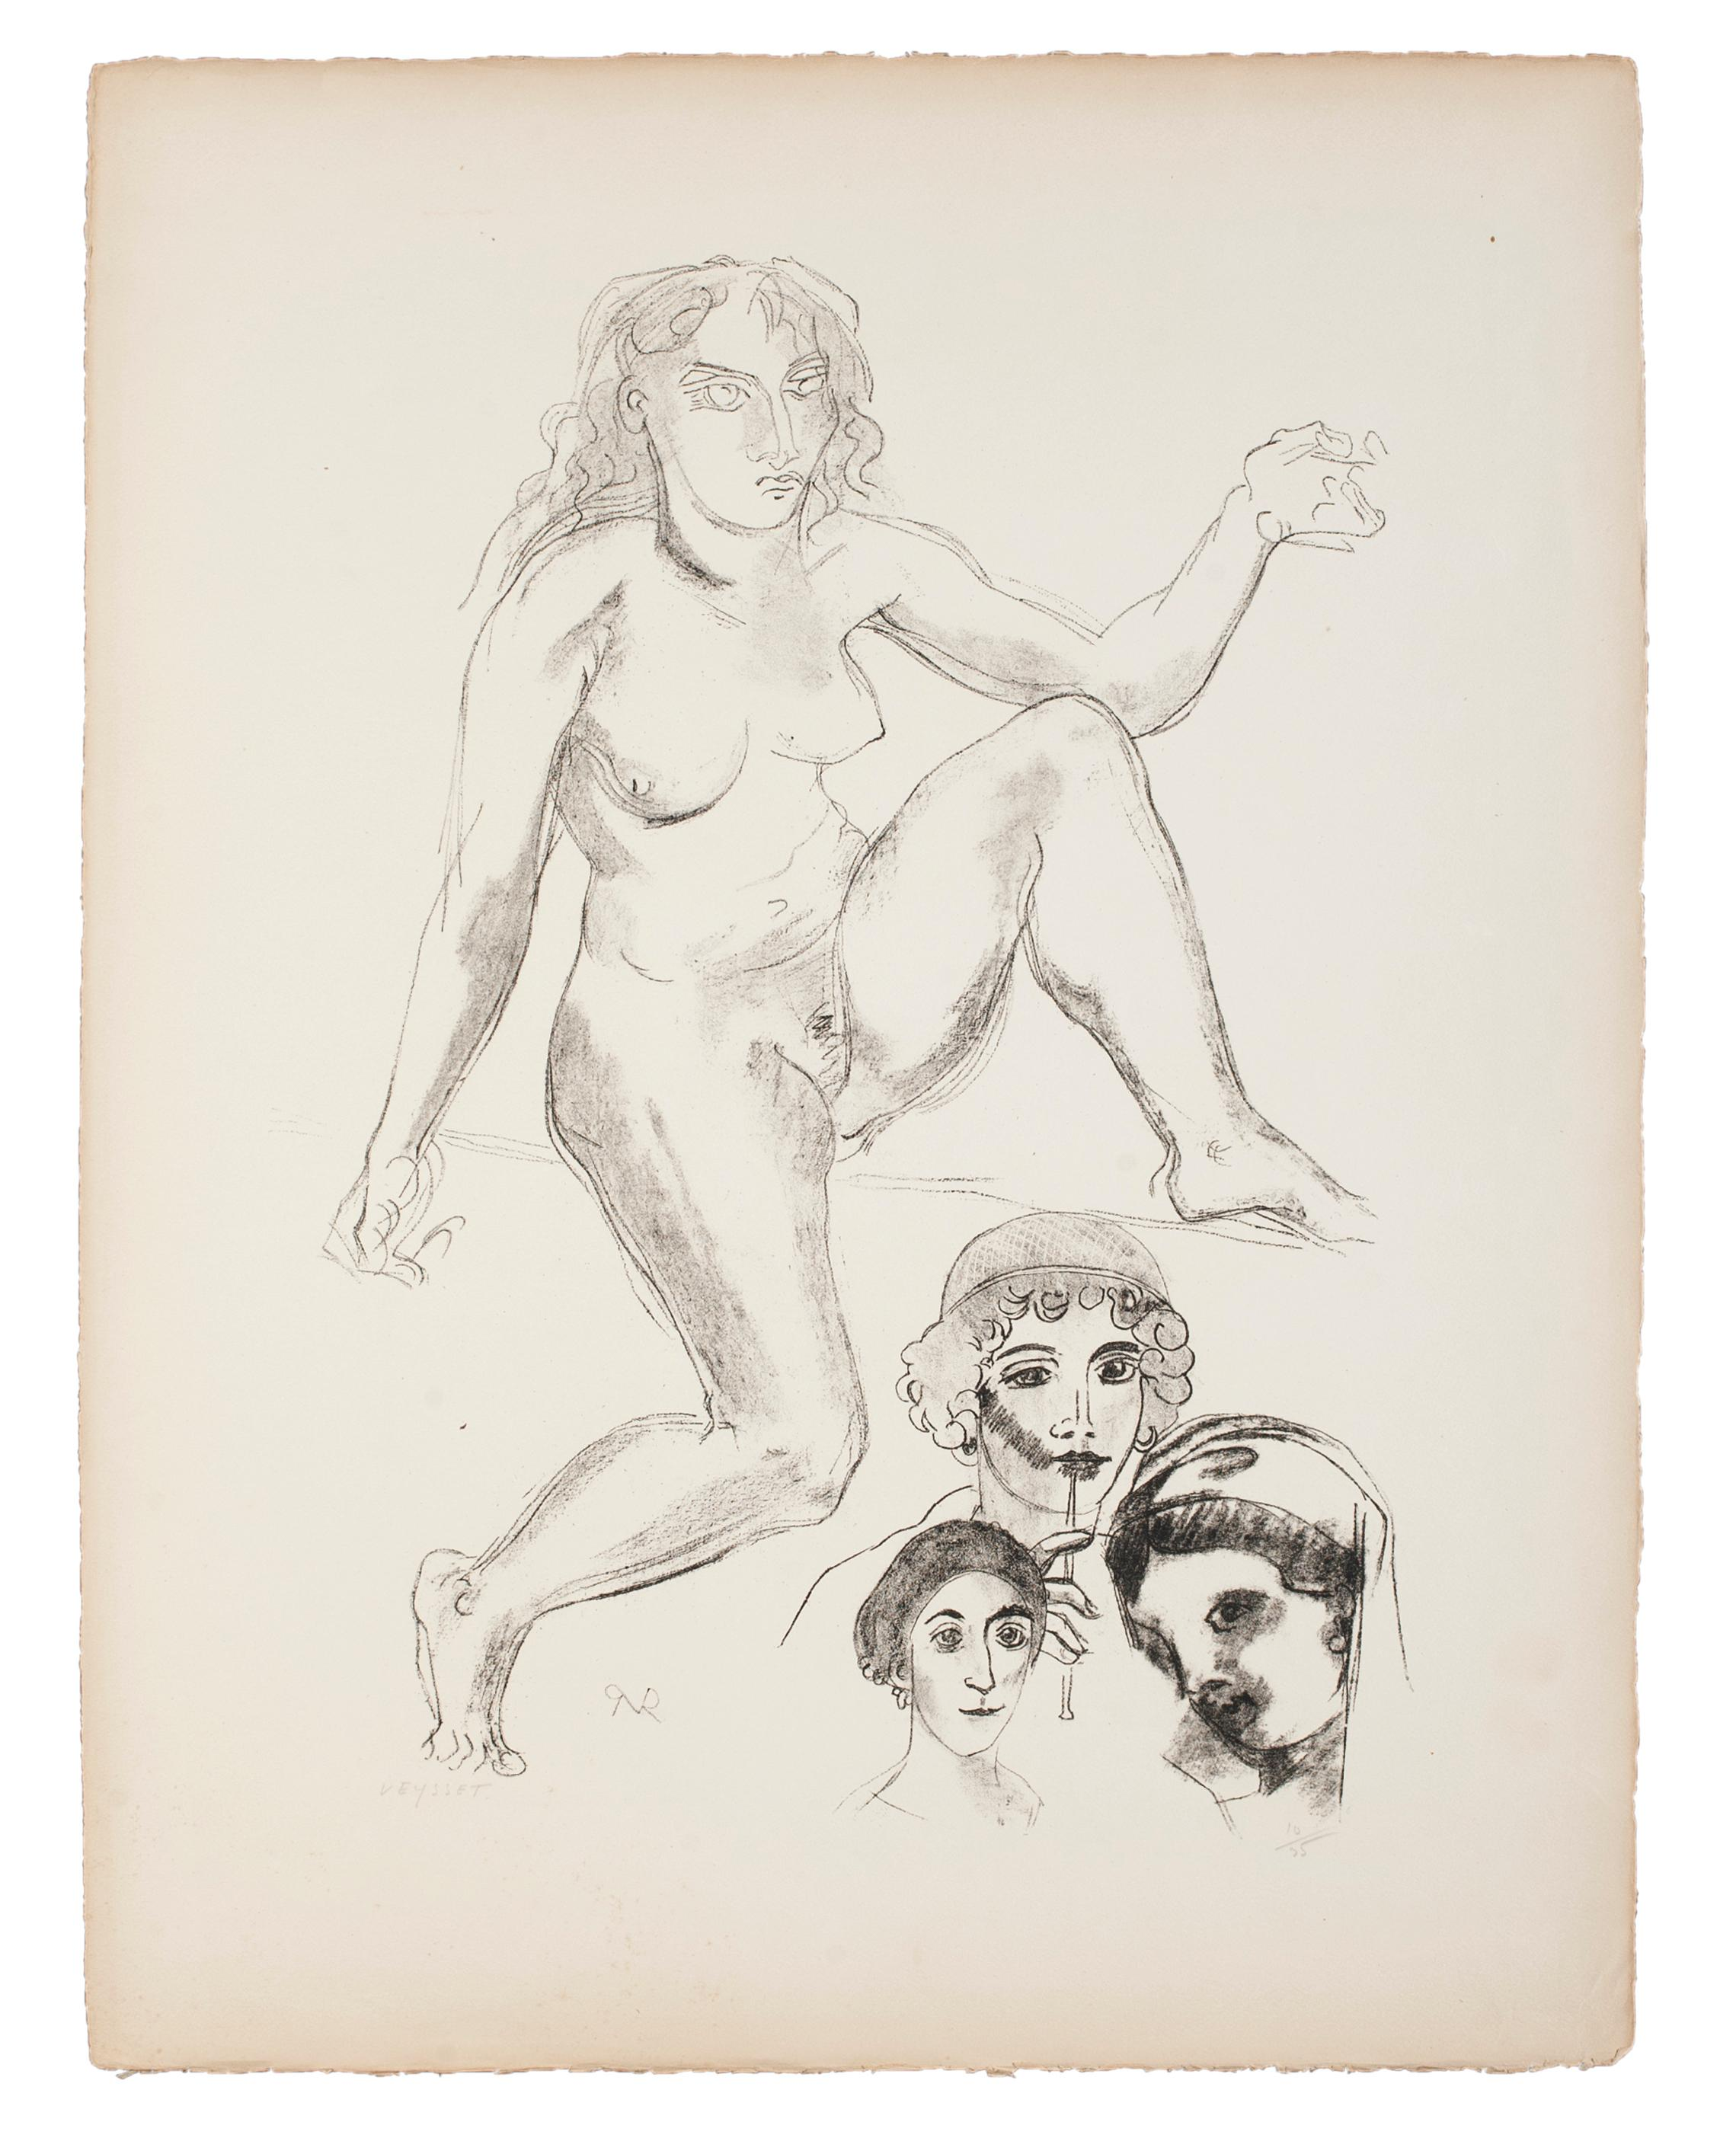 Standing Female Nude with Portraits  - Original Lithograph by Raymond Veysset